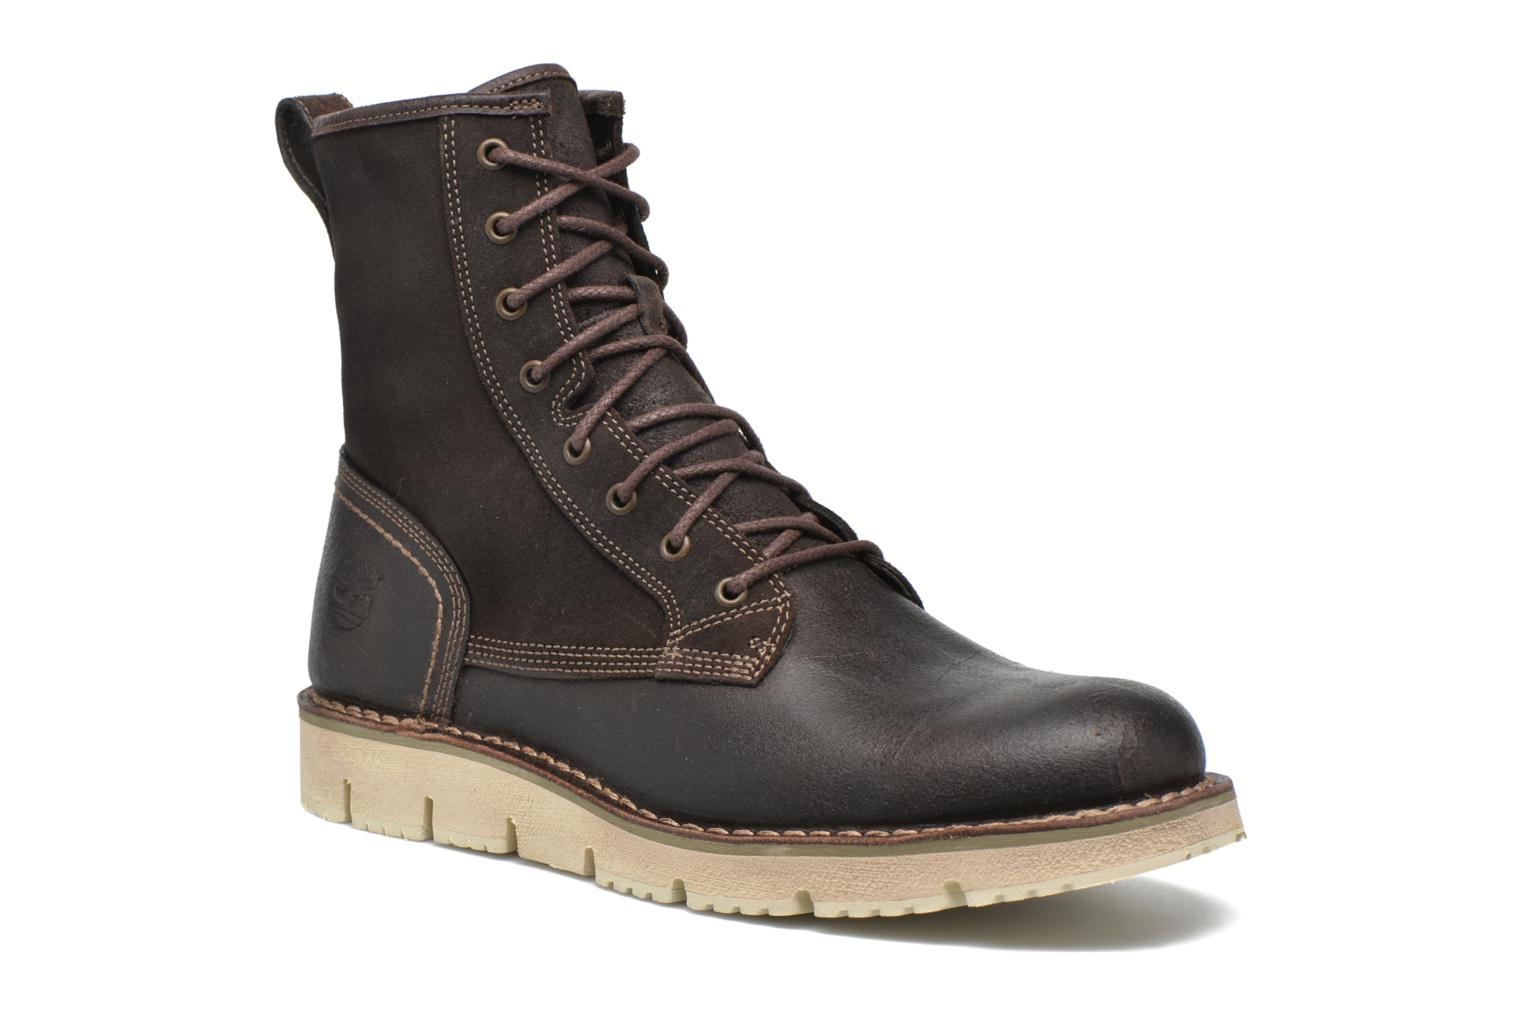 Westmore Boot Soil Frontier FG w/ Bitter Chocolate Silk